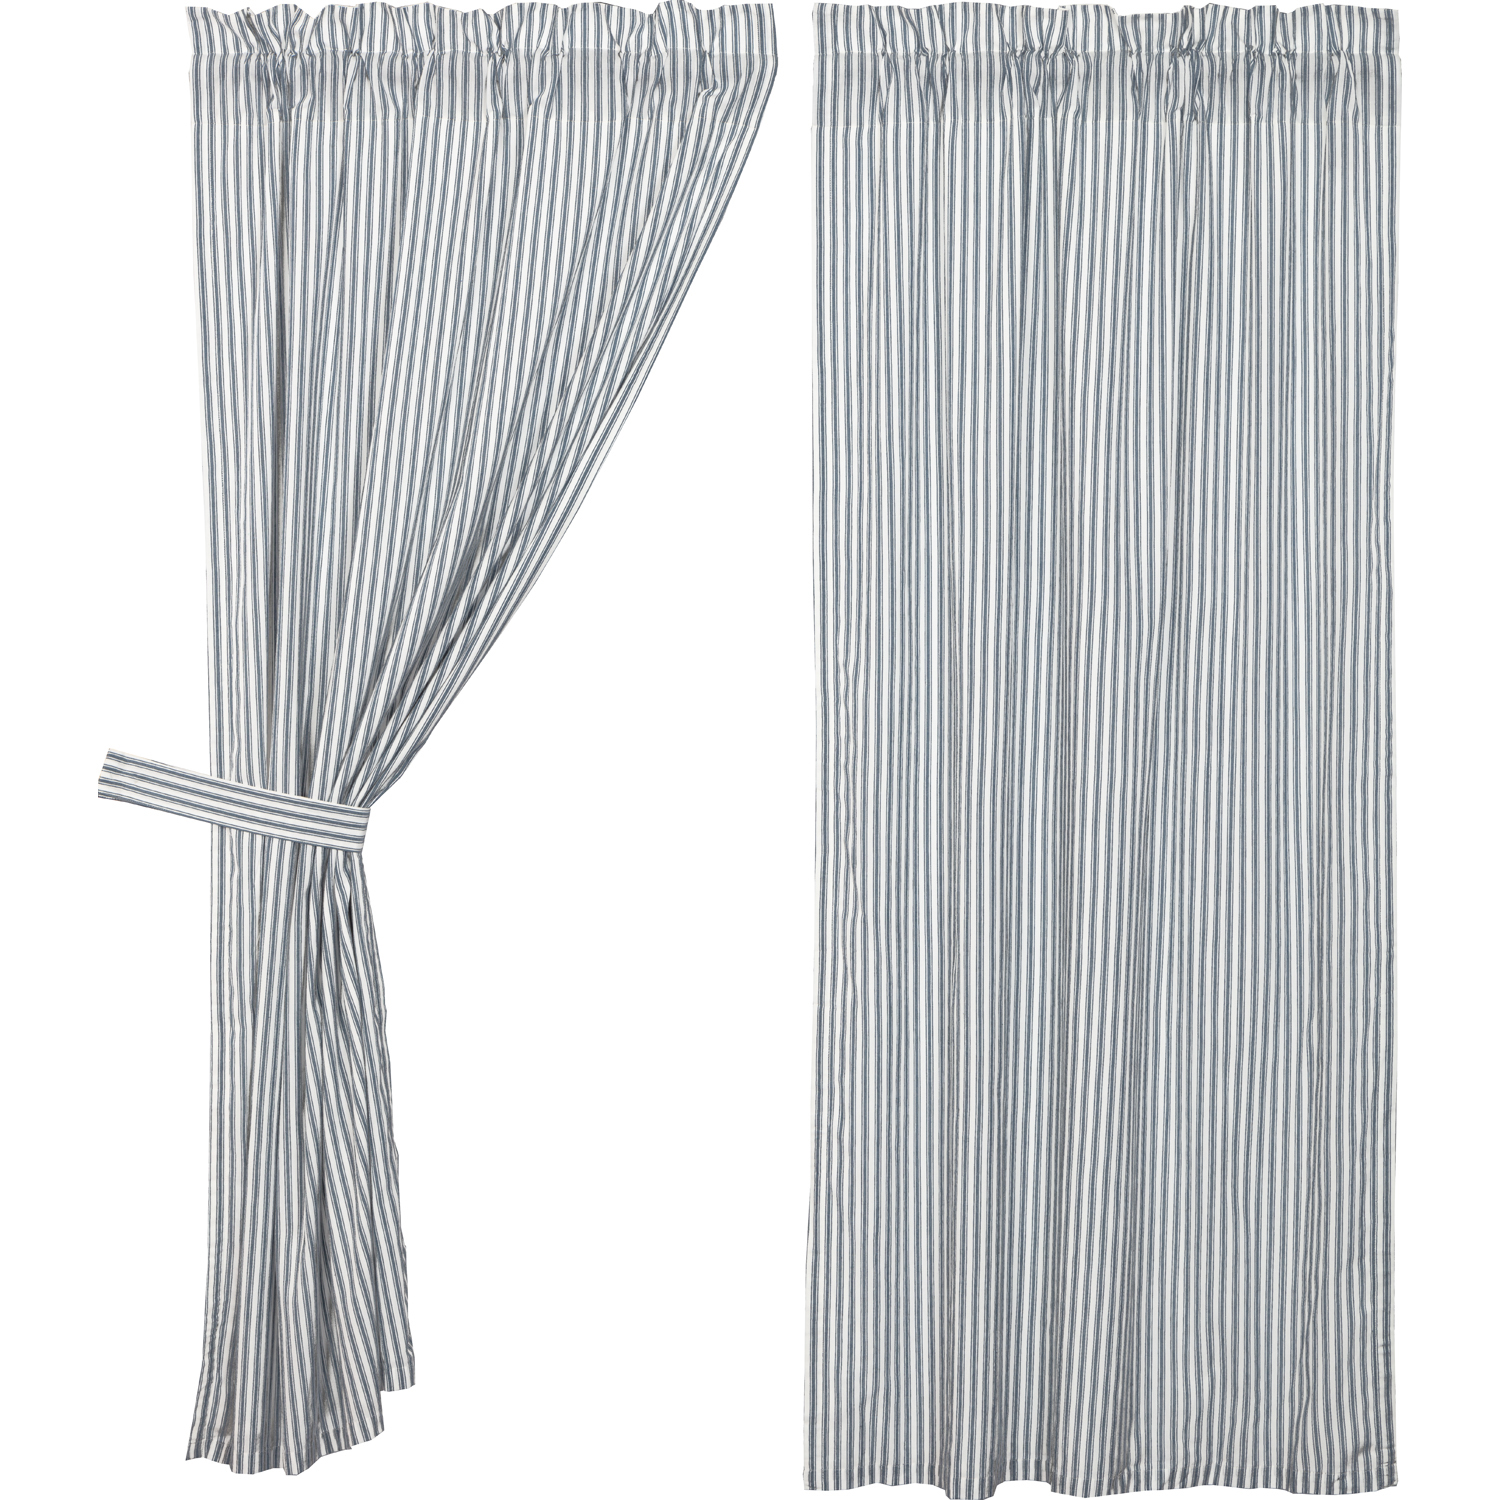 Sawyer Mill Blue Ticking Stripe Short Panel Set of 2 63x36